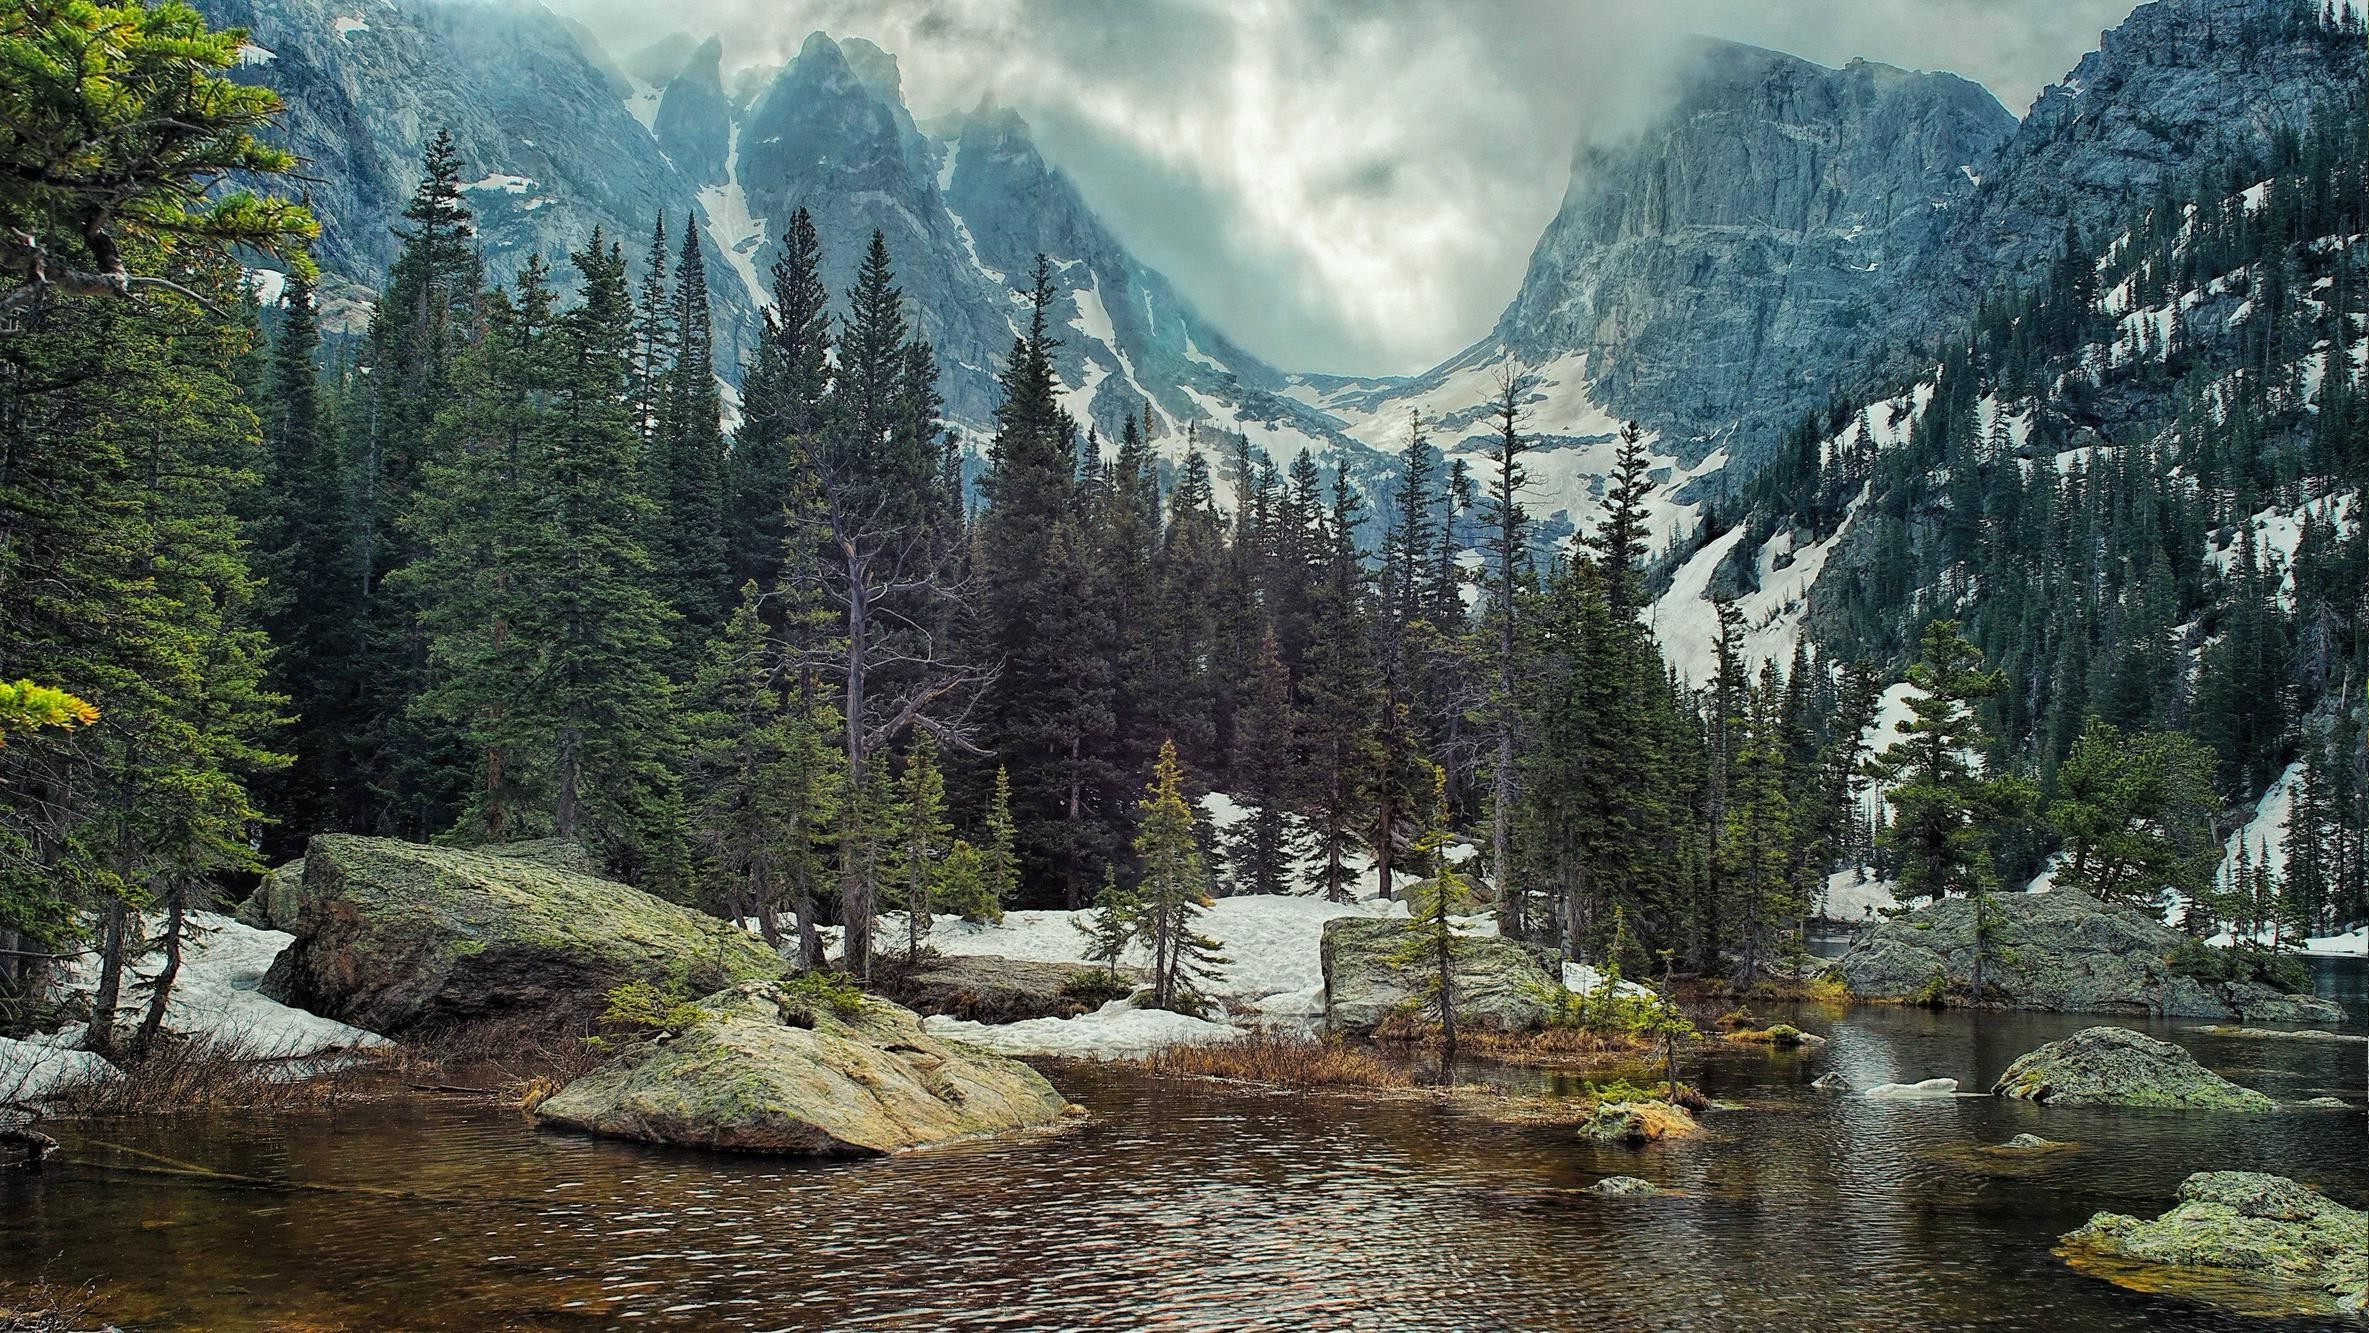 nature, Landscape, Mountain, Forest, Lake, Rock, Pine Trees ...